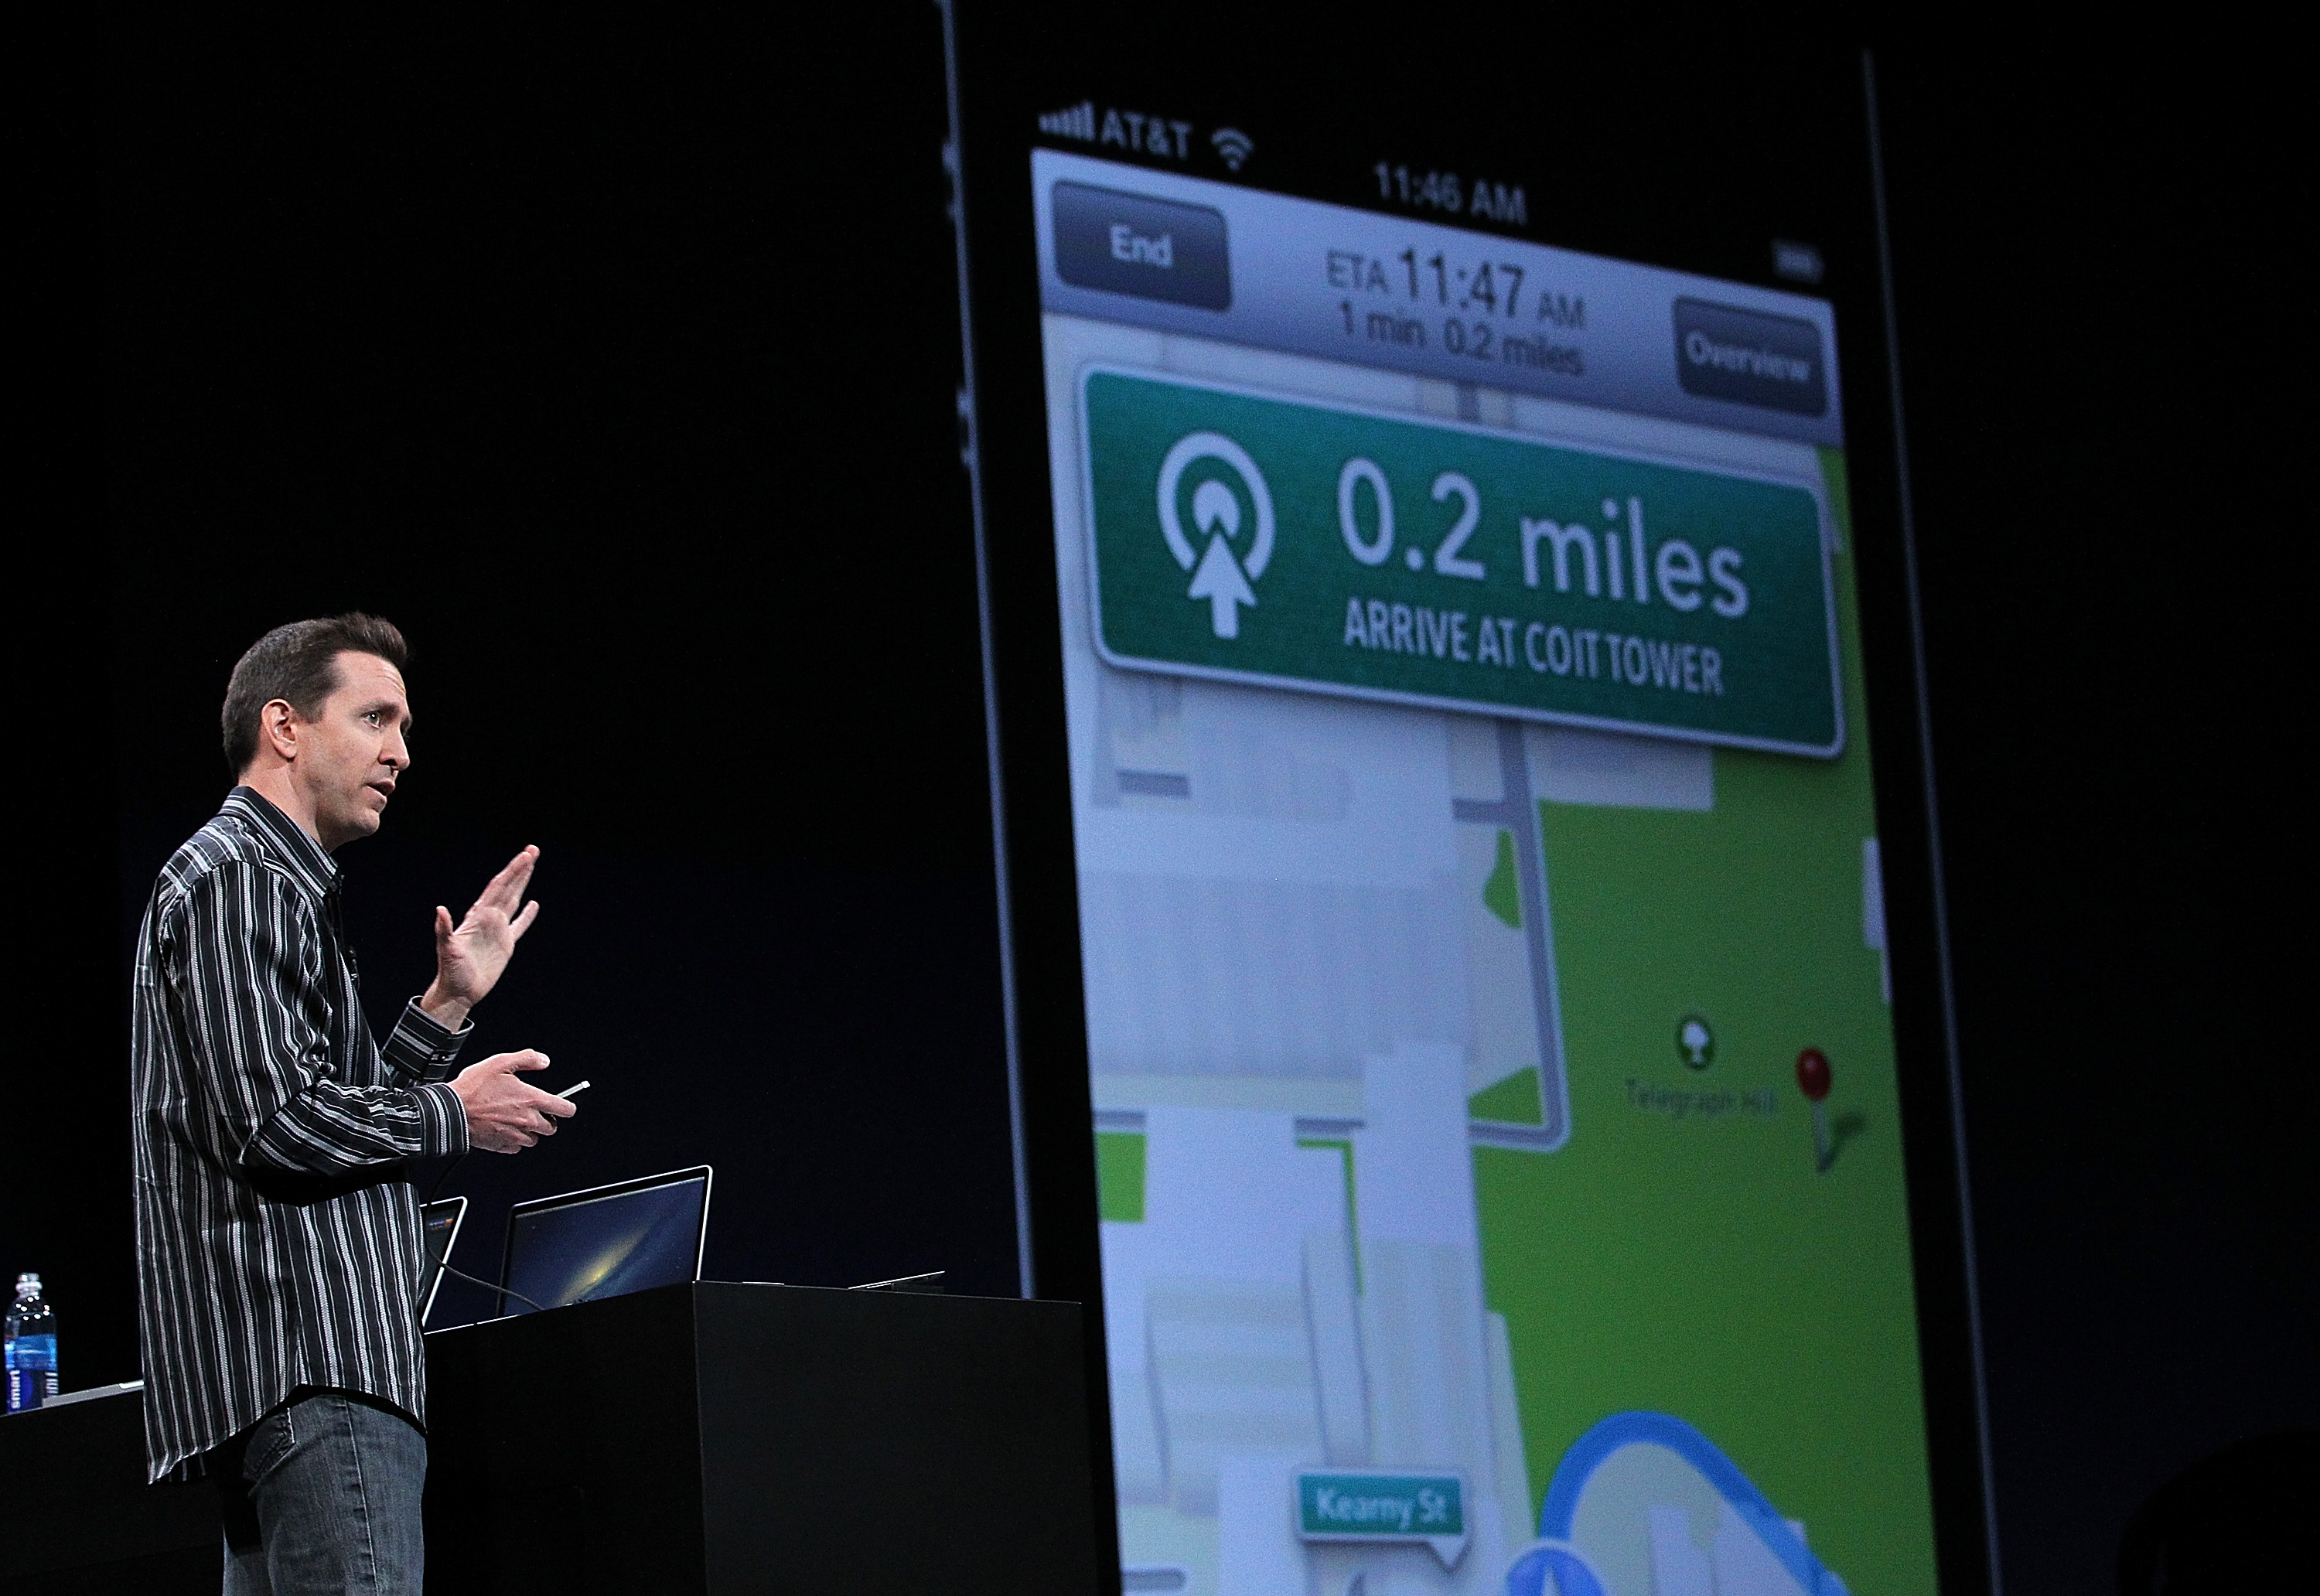 Apple Senior VP of iPhone Software Scott Forstall demonstrates the new map application featured on iOS 6 during the keynote address during the 2012 Apple WWDC keynote address at the Moscone Center on June 11, 2012 in San Francisco, California.